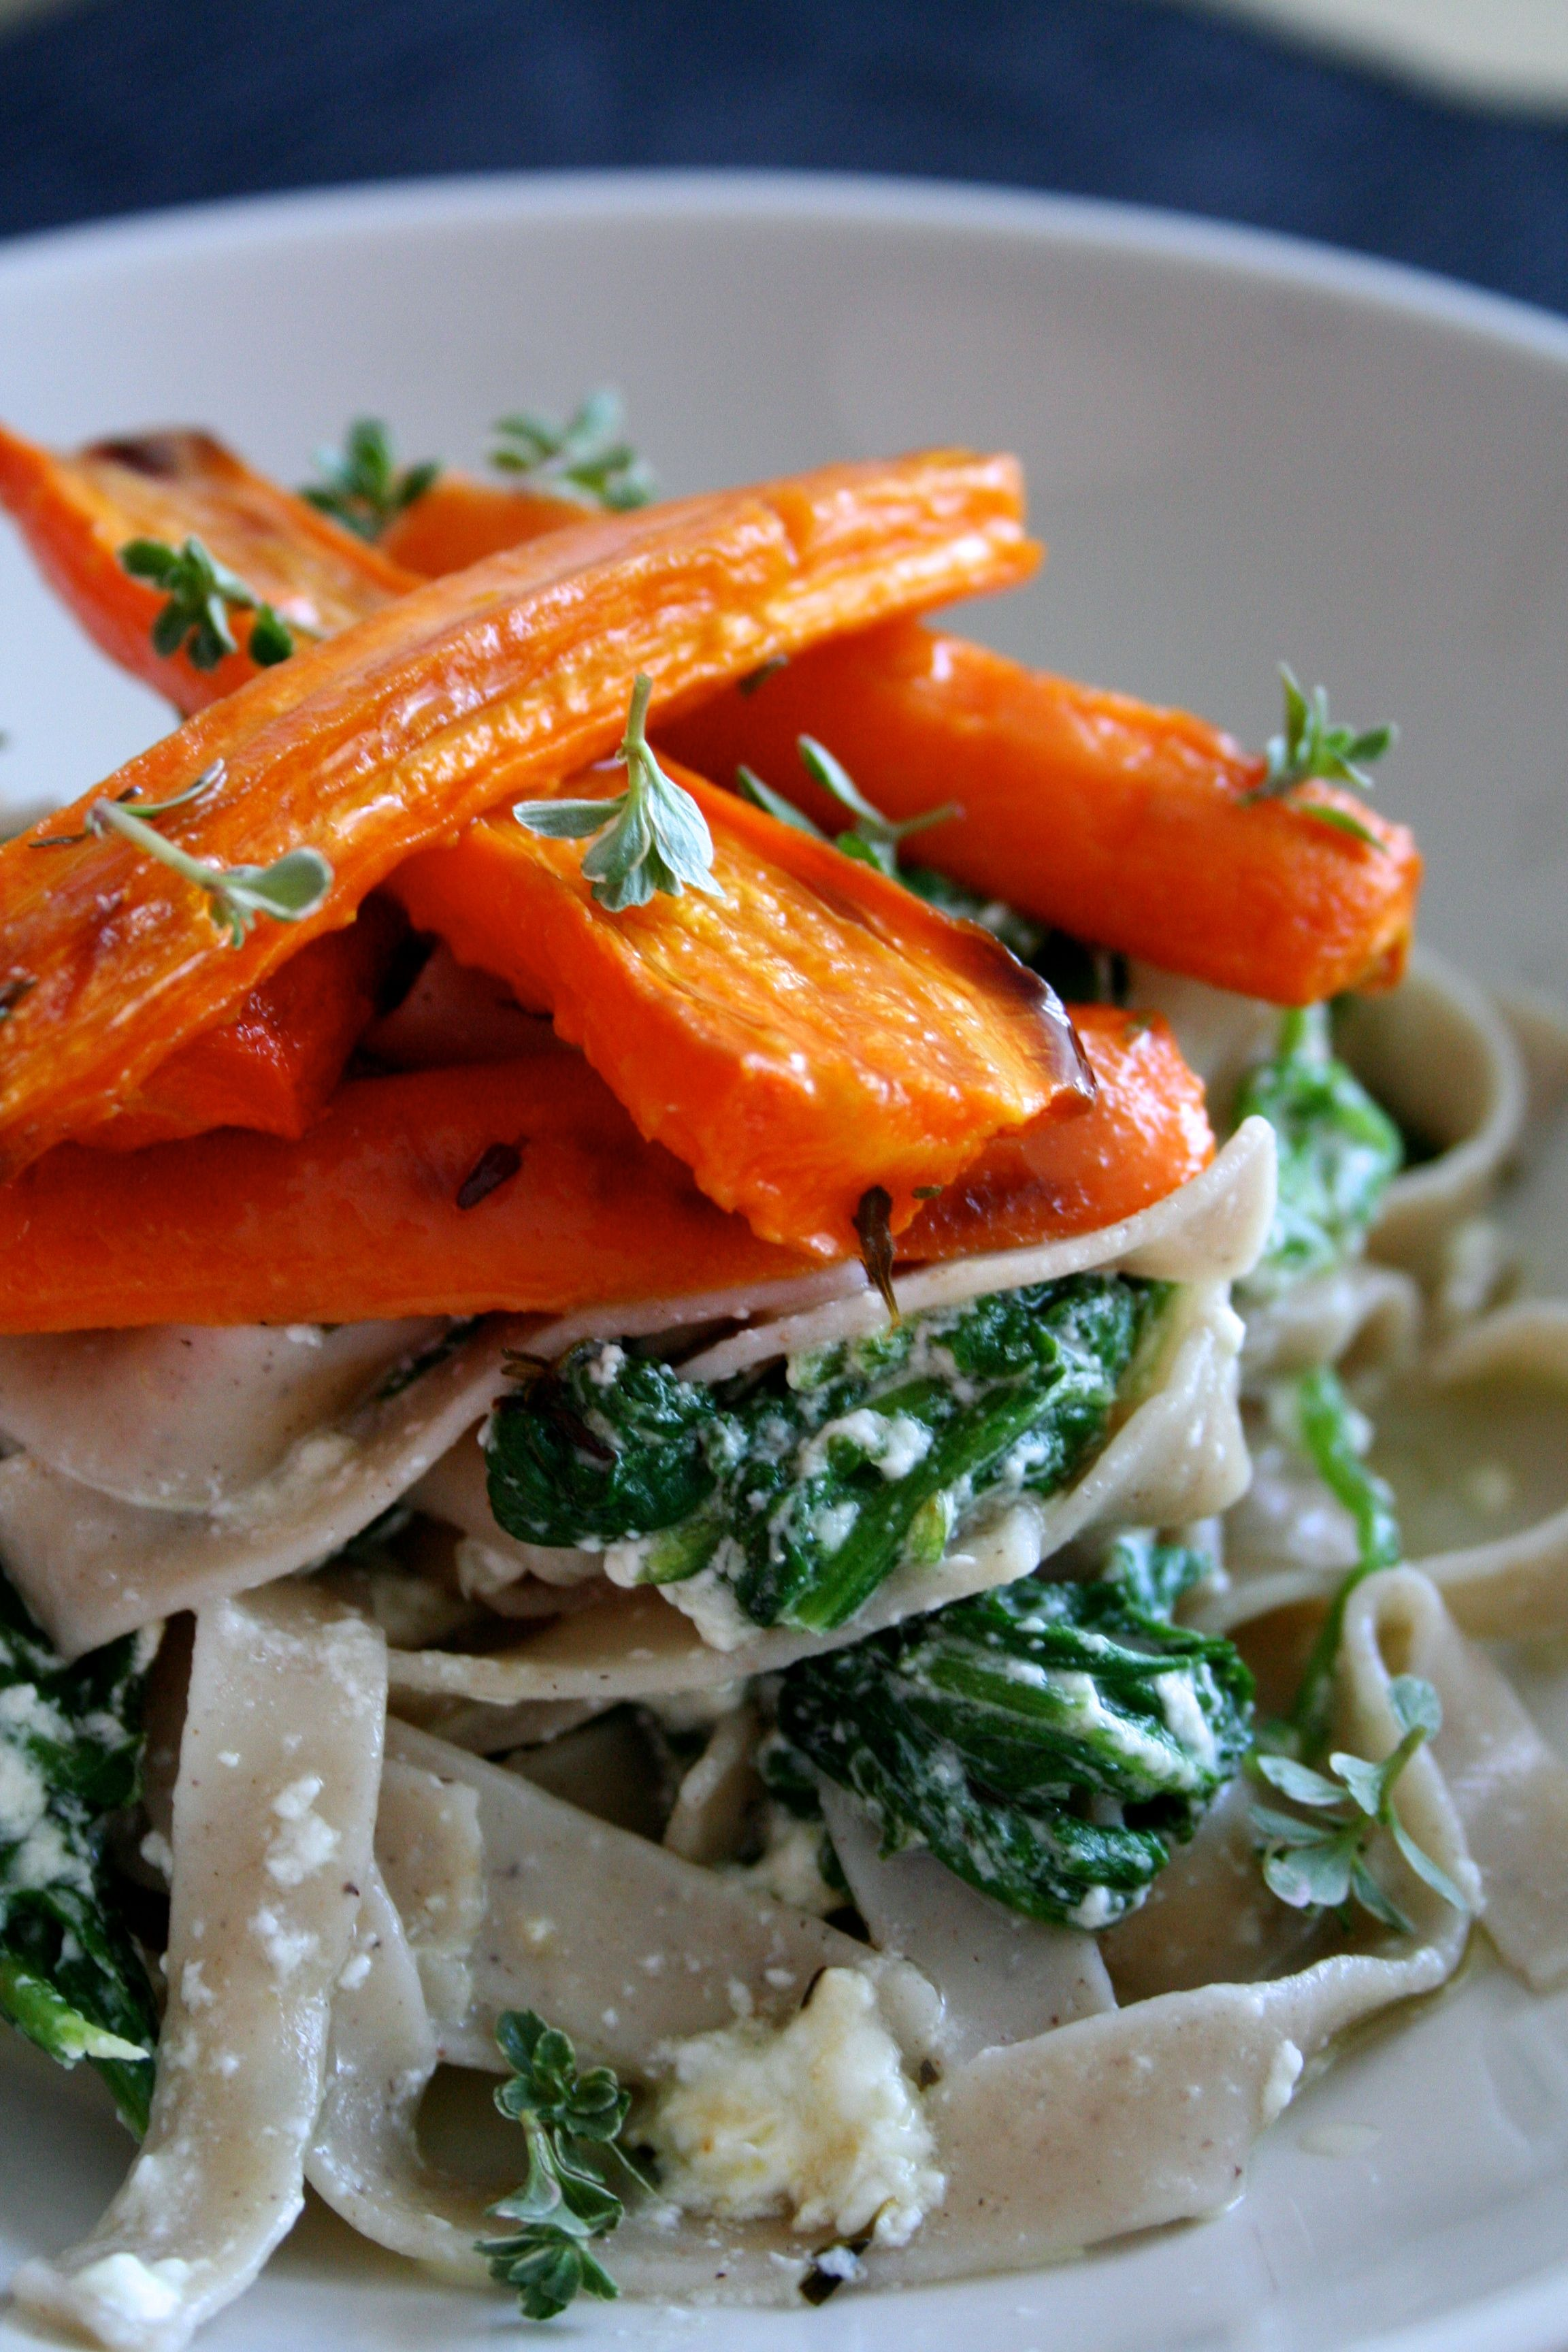 Creamed spinach pasta with oven baked carrots lolita bopa for Creamy spinach pasta bake